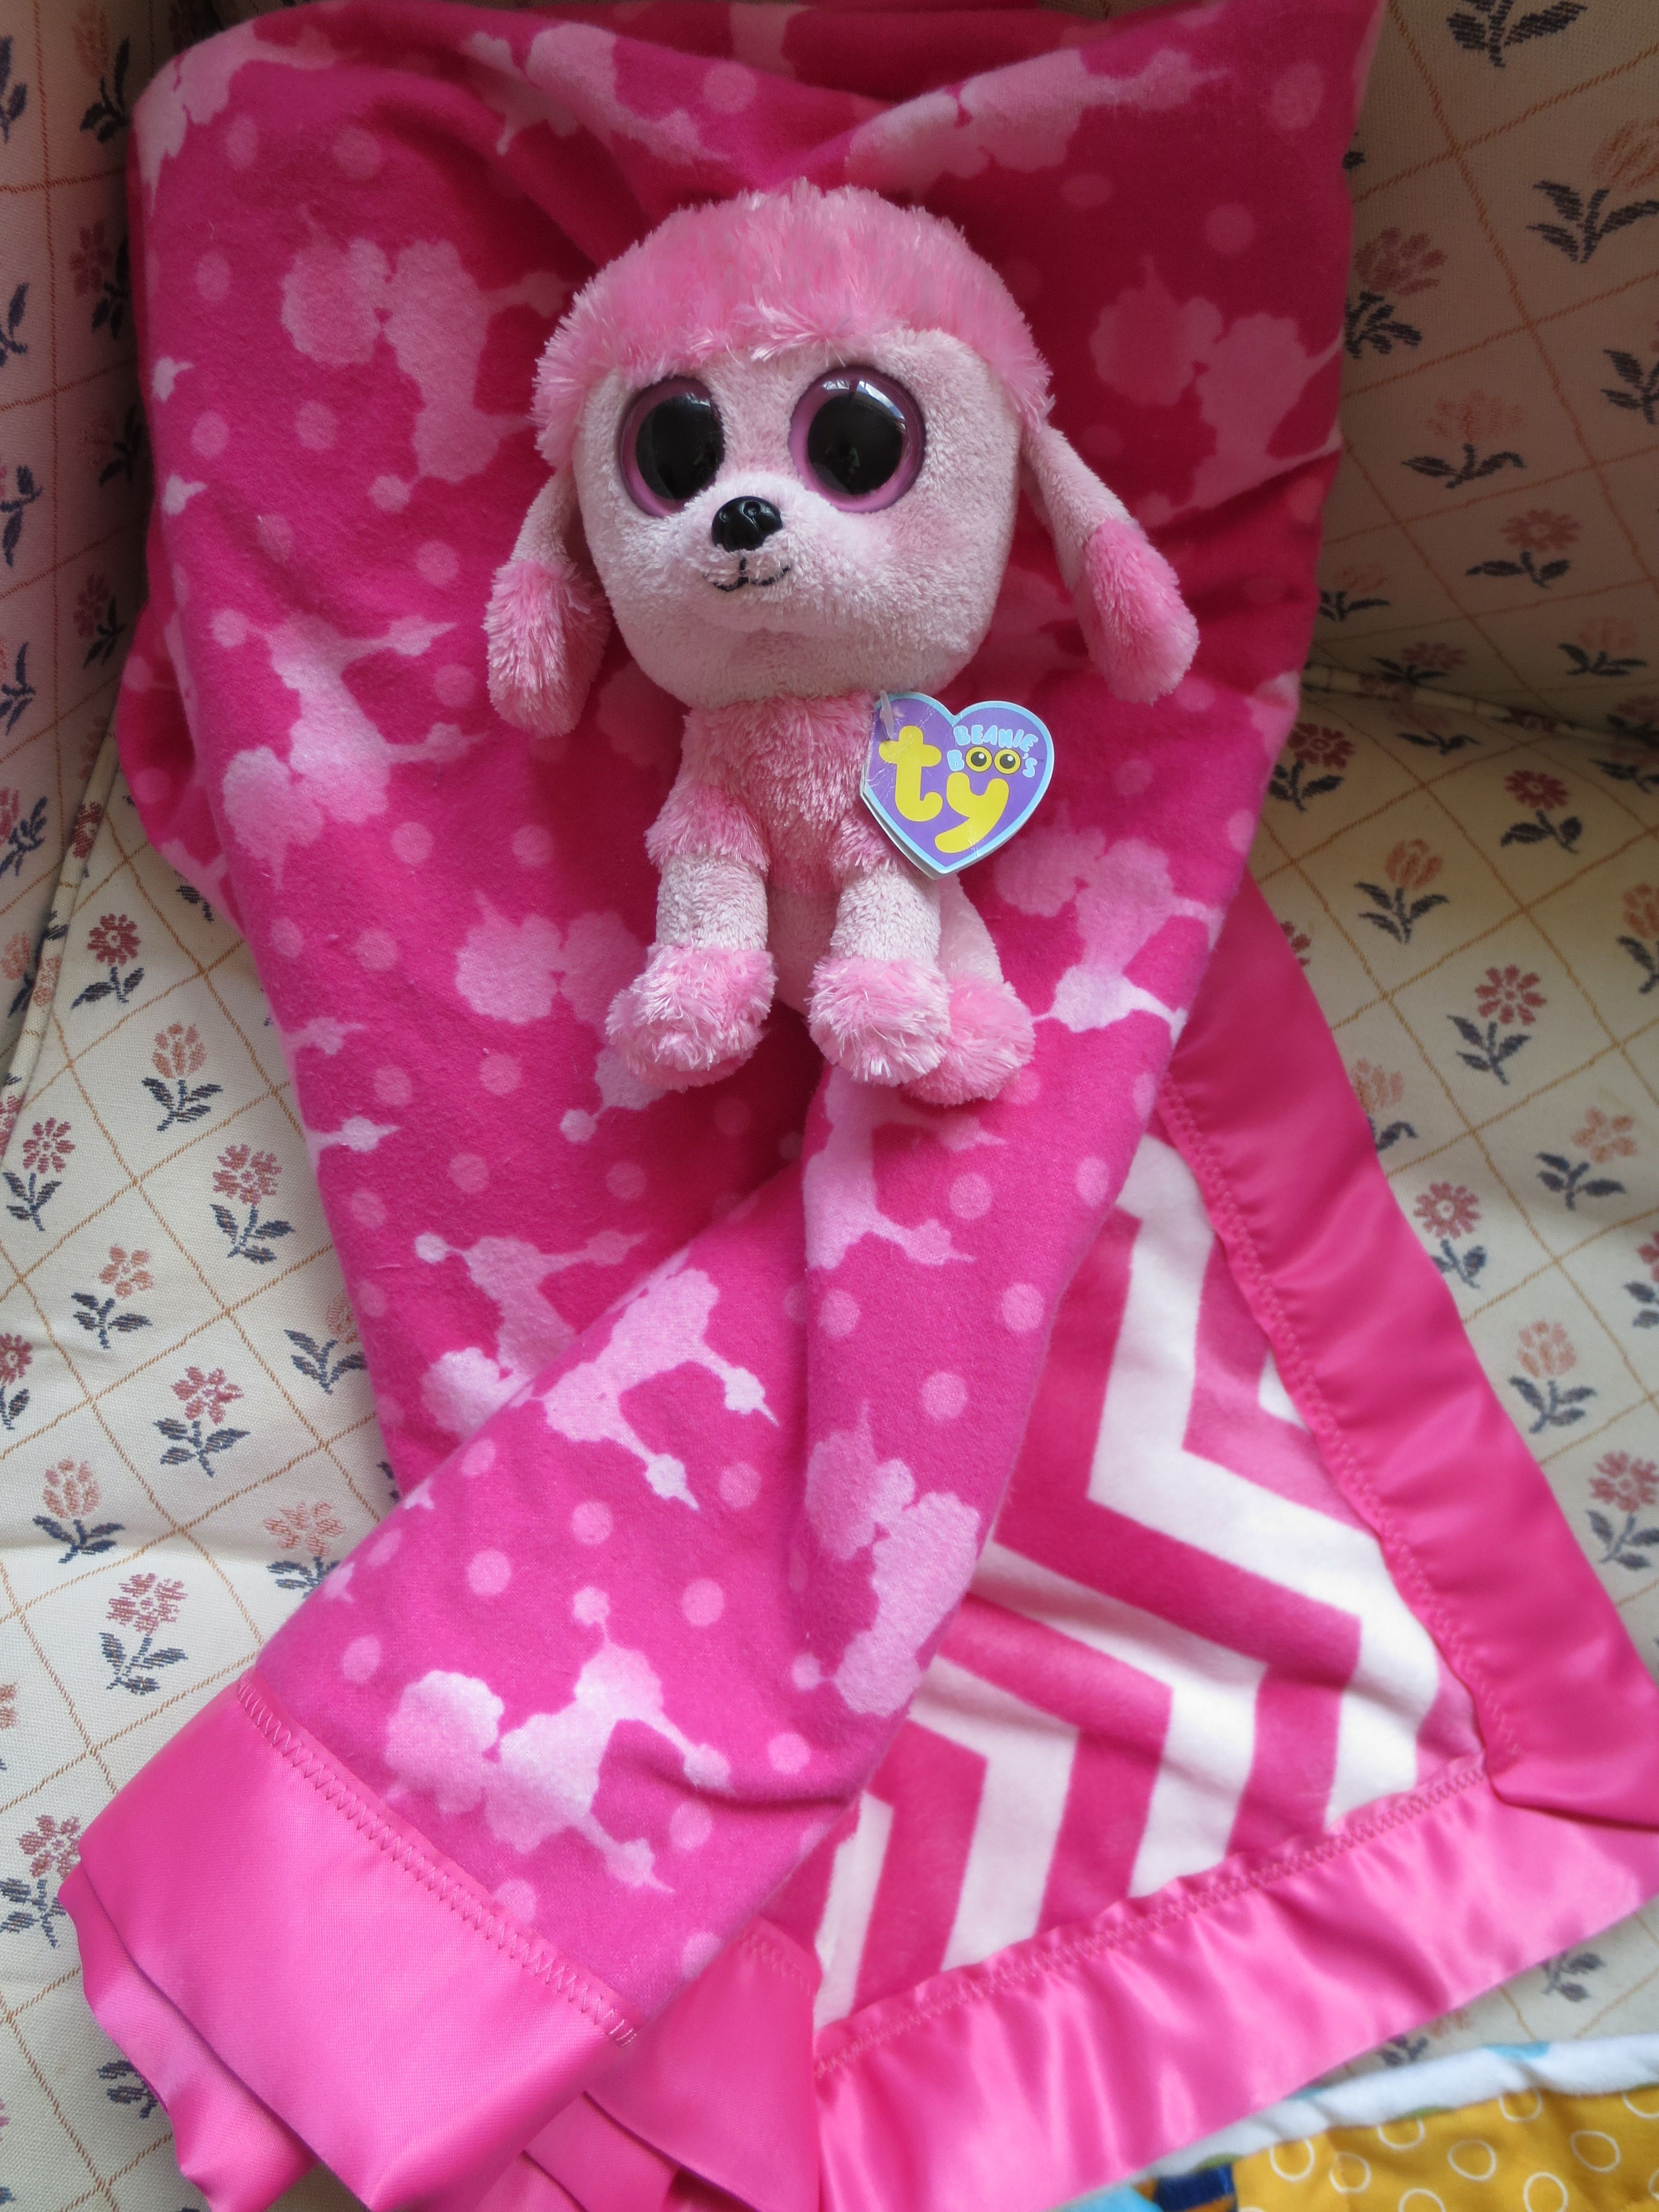 Poodle blanket with adorable poodle! plus fuzzy pink chevron on the back = Adorable!!